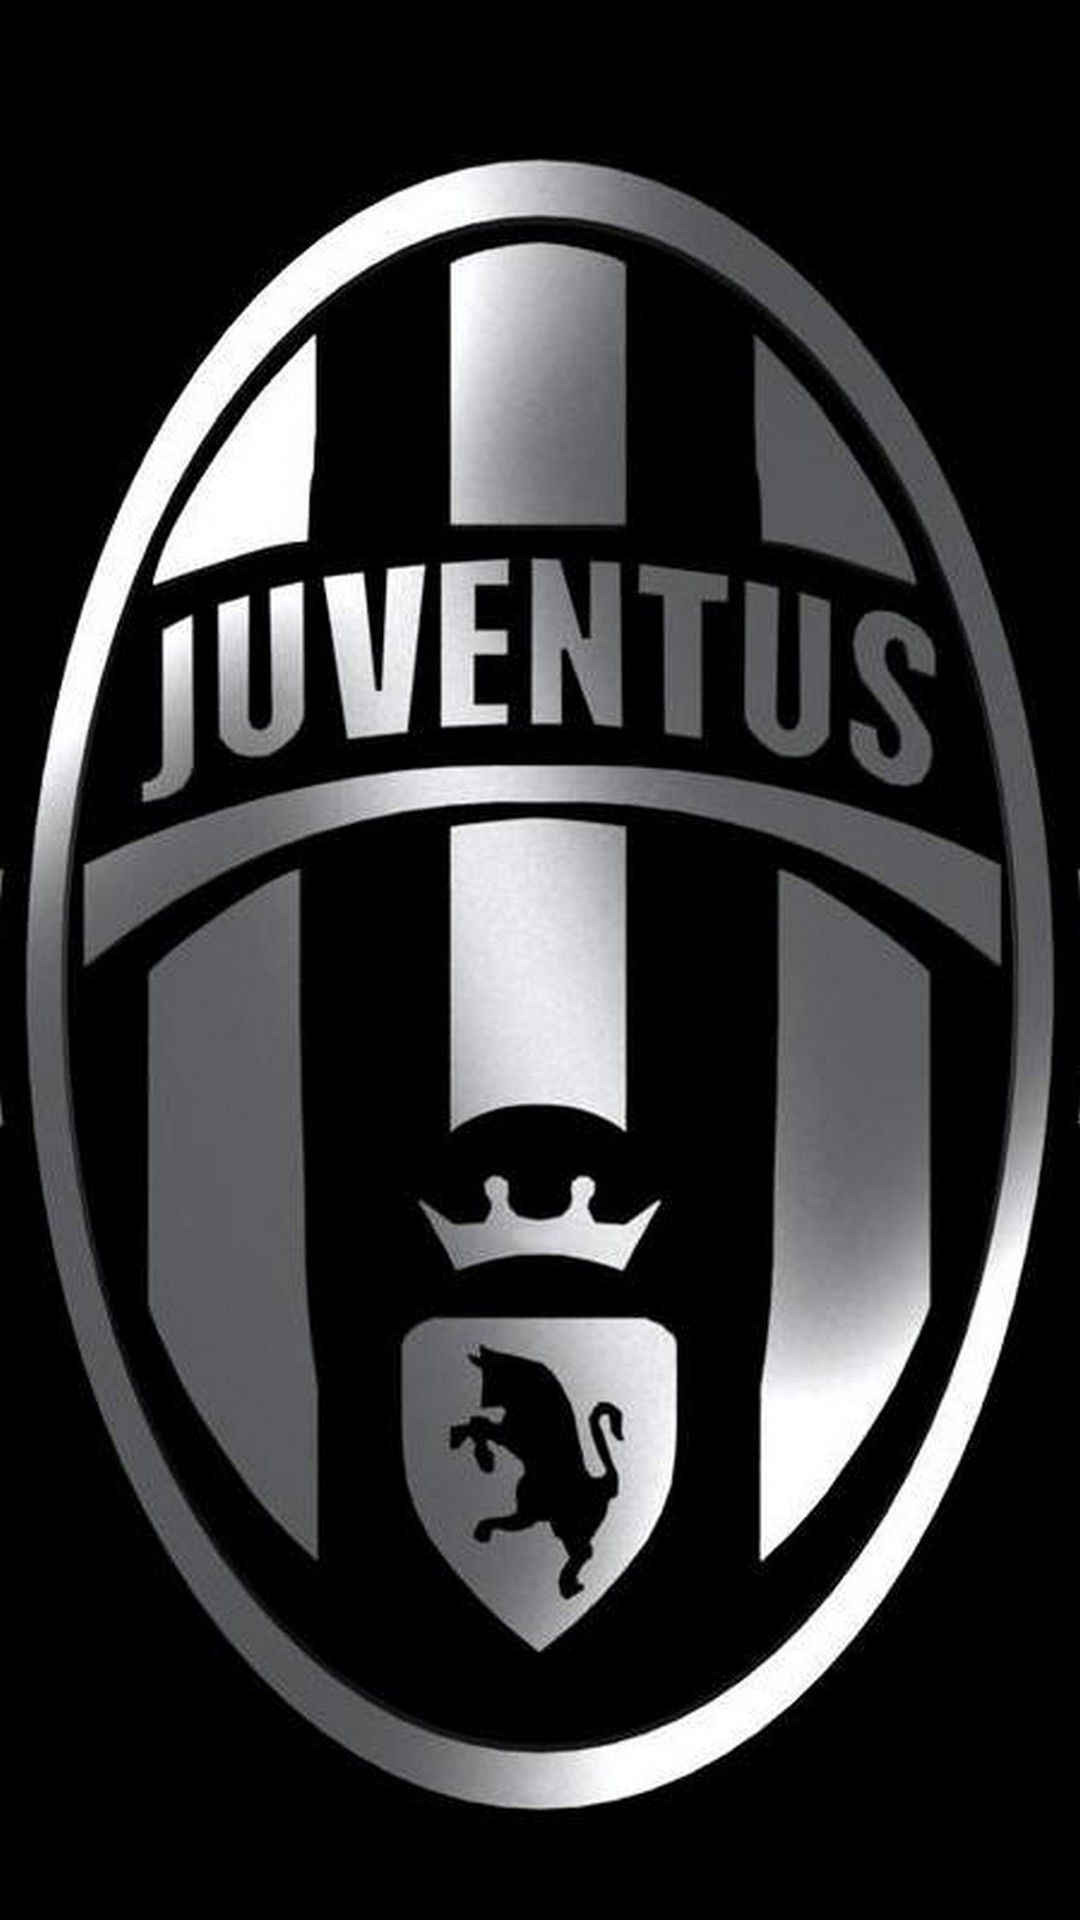 Juventus Logo Wallpaper Iphone Best Iphone Wallpaper Juventus Juventus Logo Juventus Wallpapers